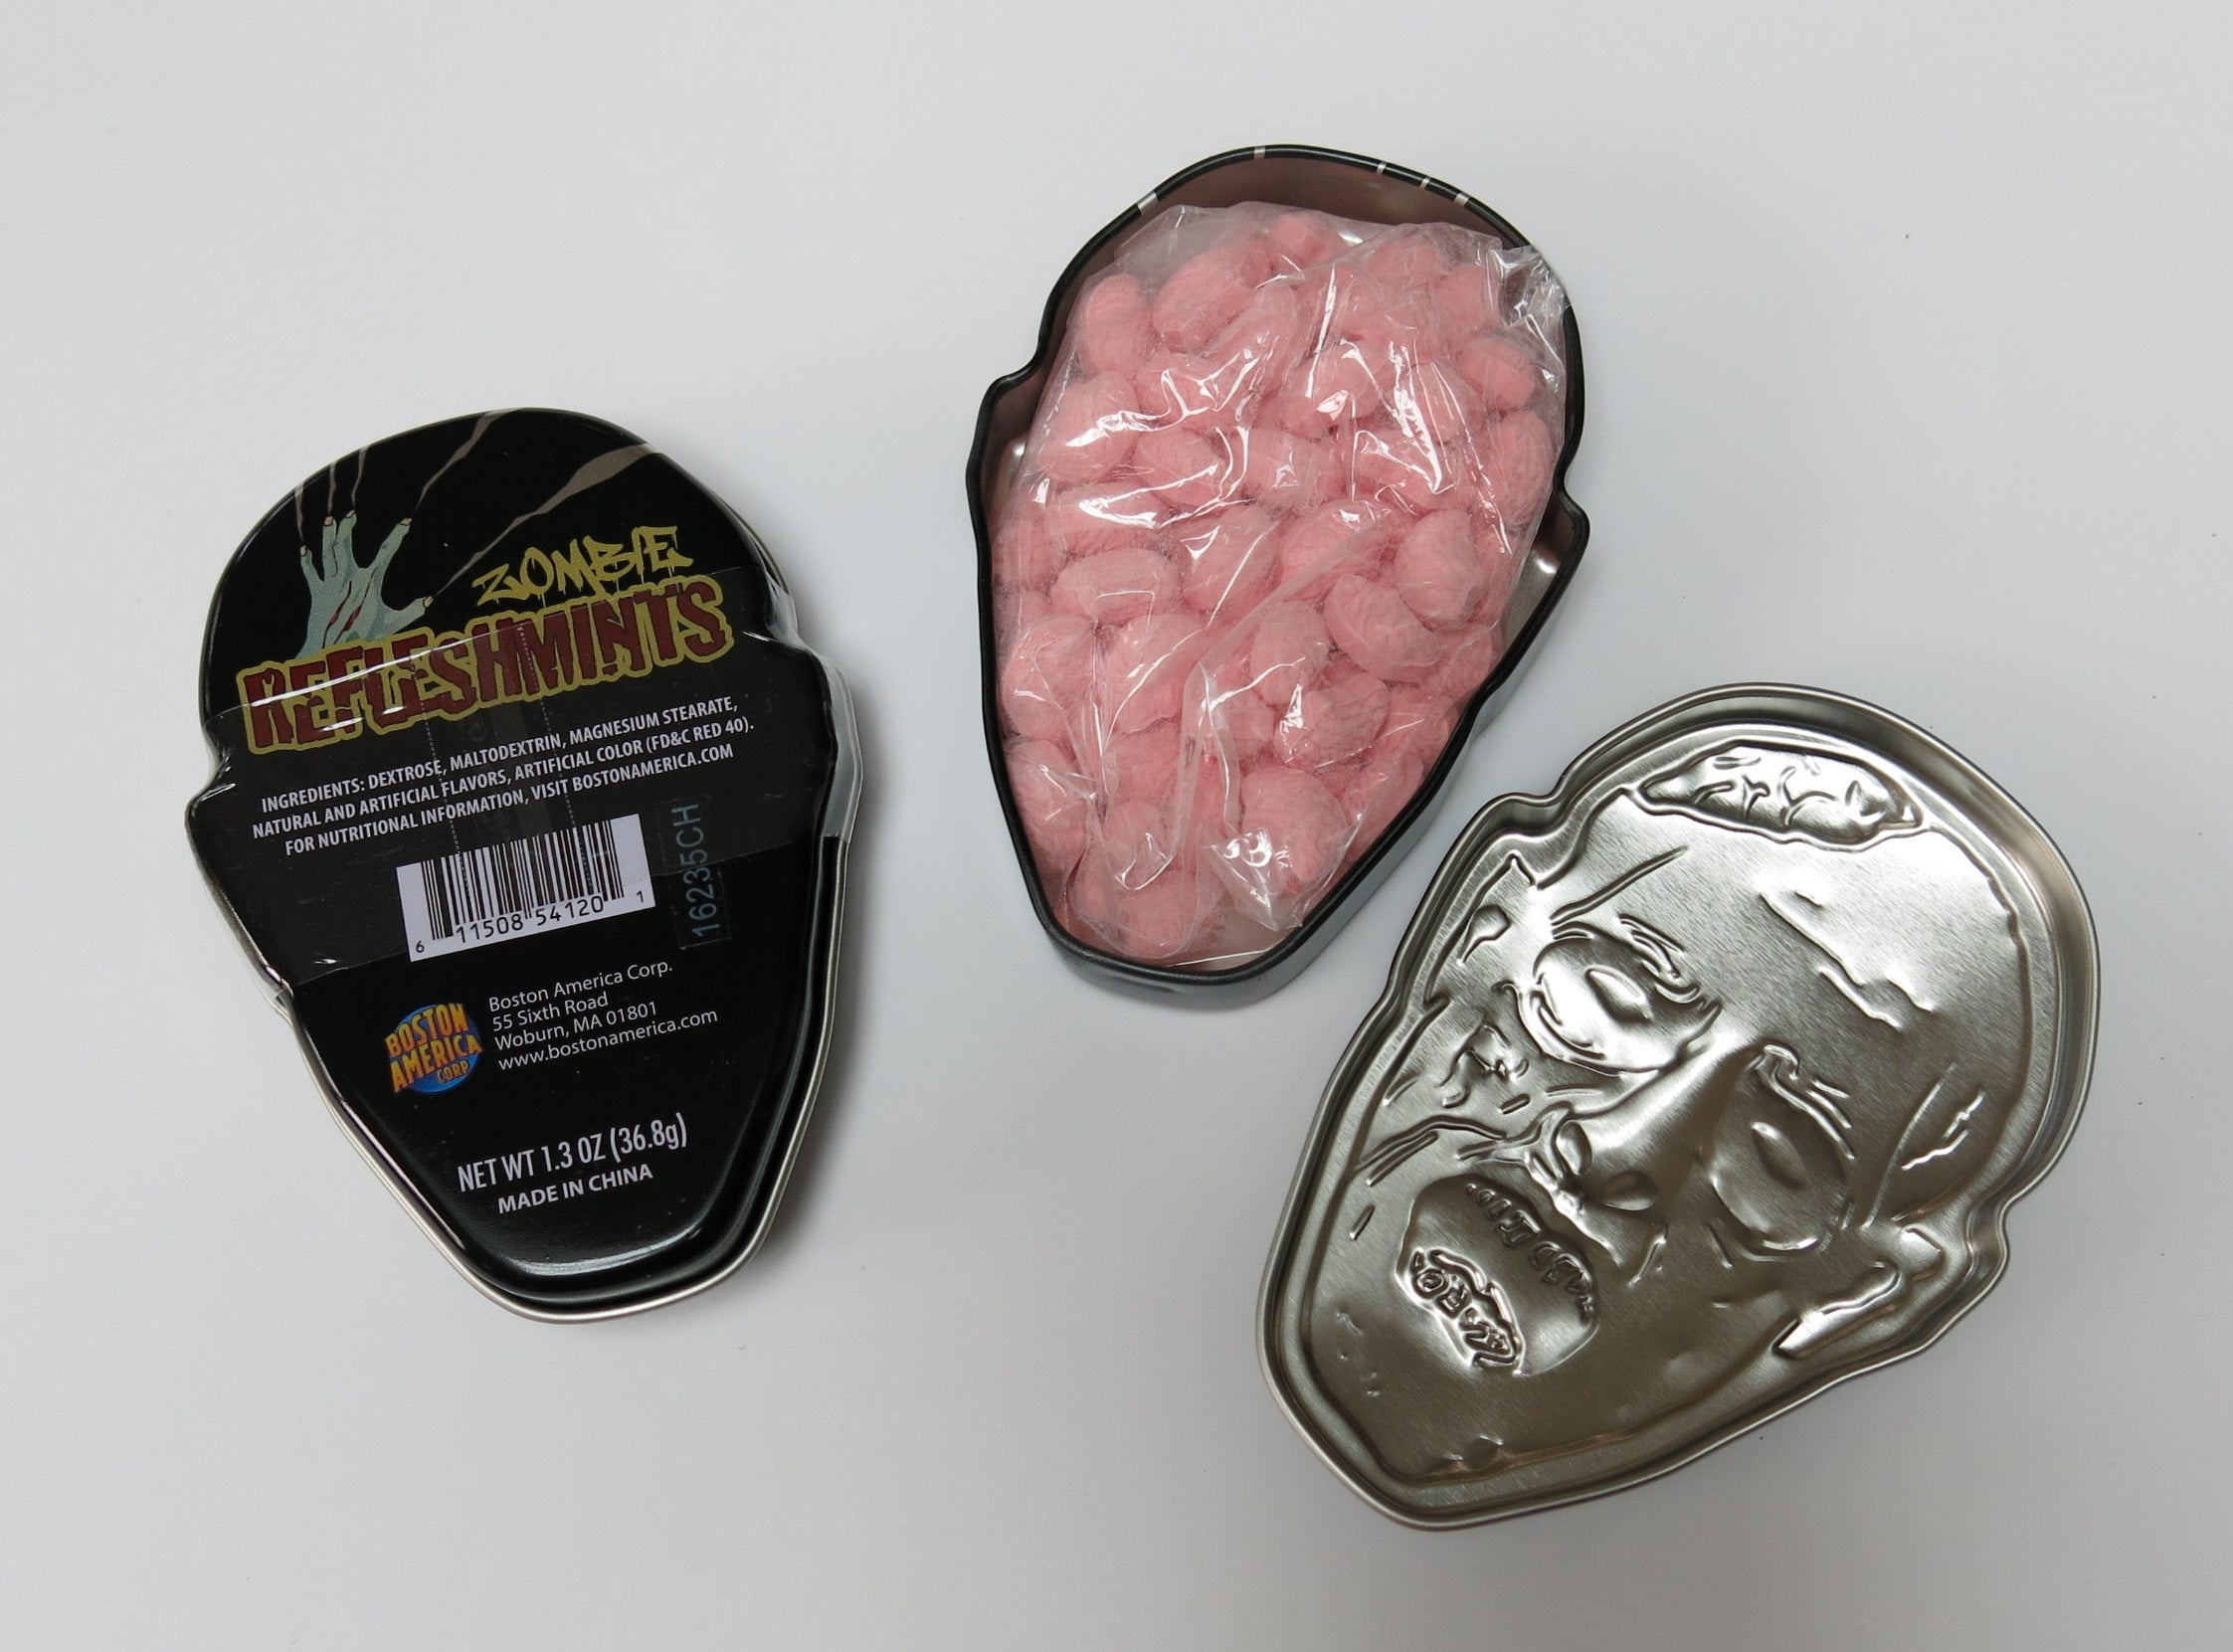 refleshmints undead corpse tin with brain mint candy